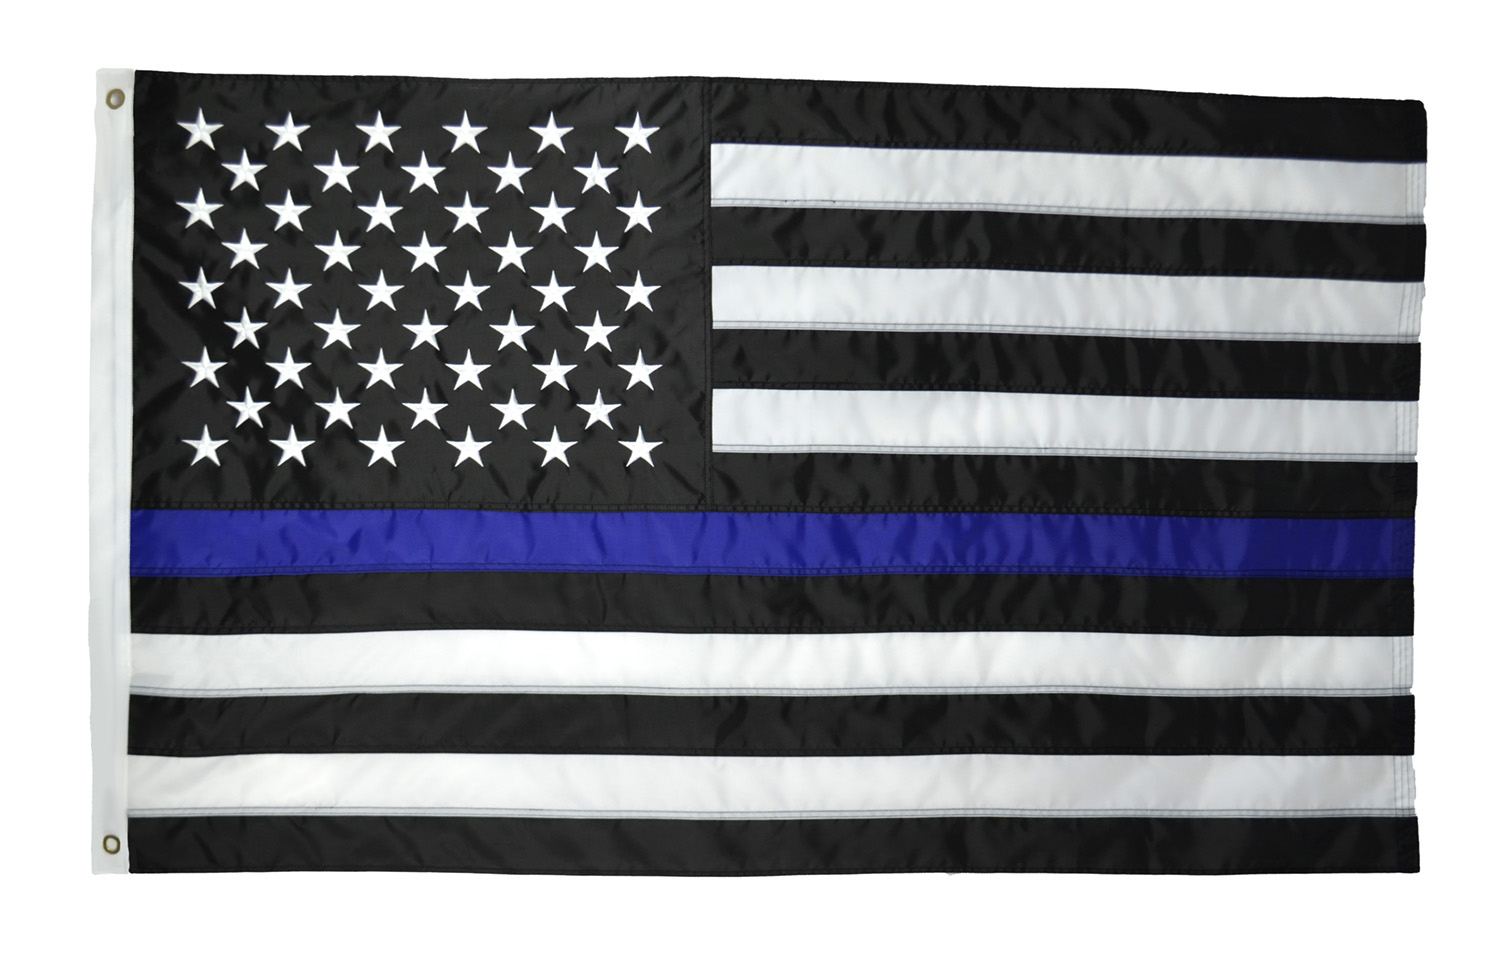 Thin Blue Line Flag - 3X5 Foot - Embroidered Stars - Sewn Stripes - Black White and Blue American Police Flag Honoring Law Enforcement Officers